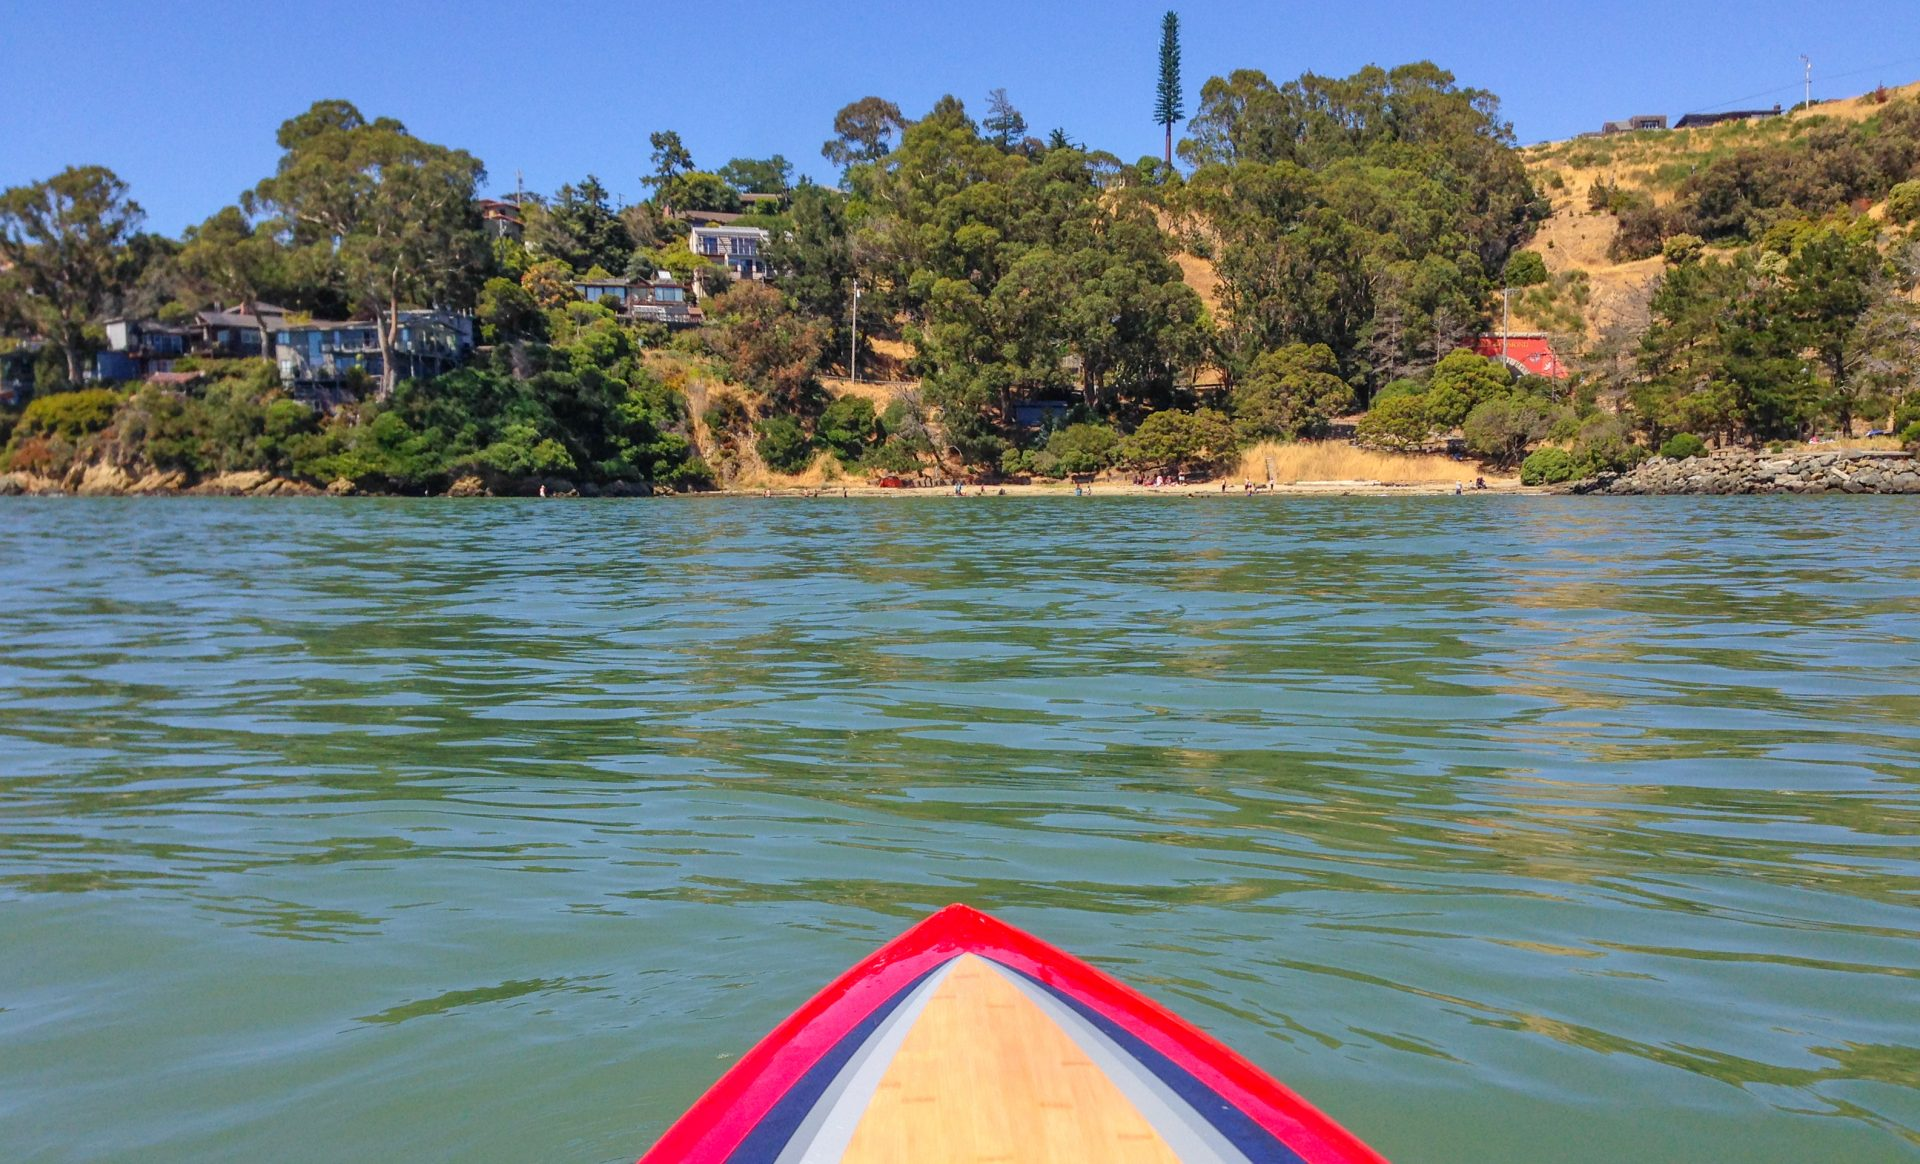 kayak level view with still water, houses and hills in distance